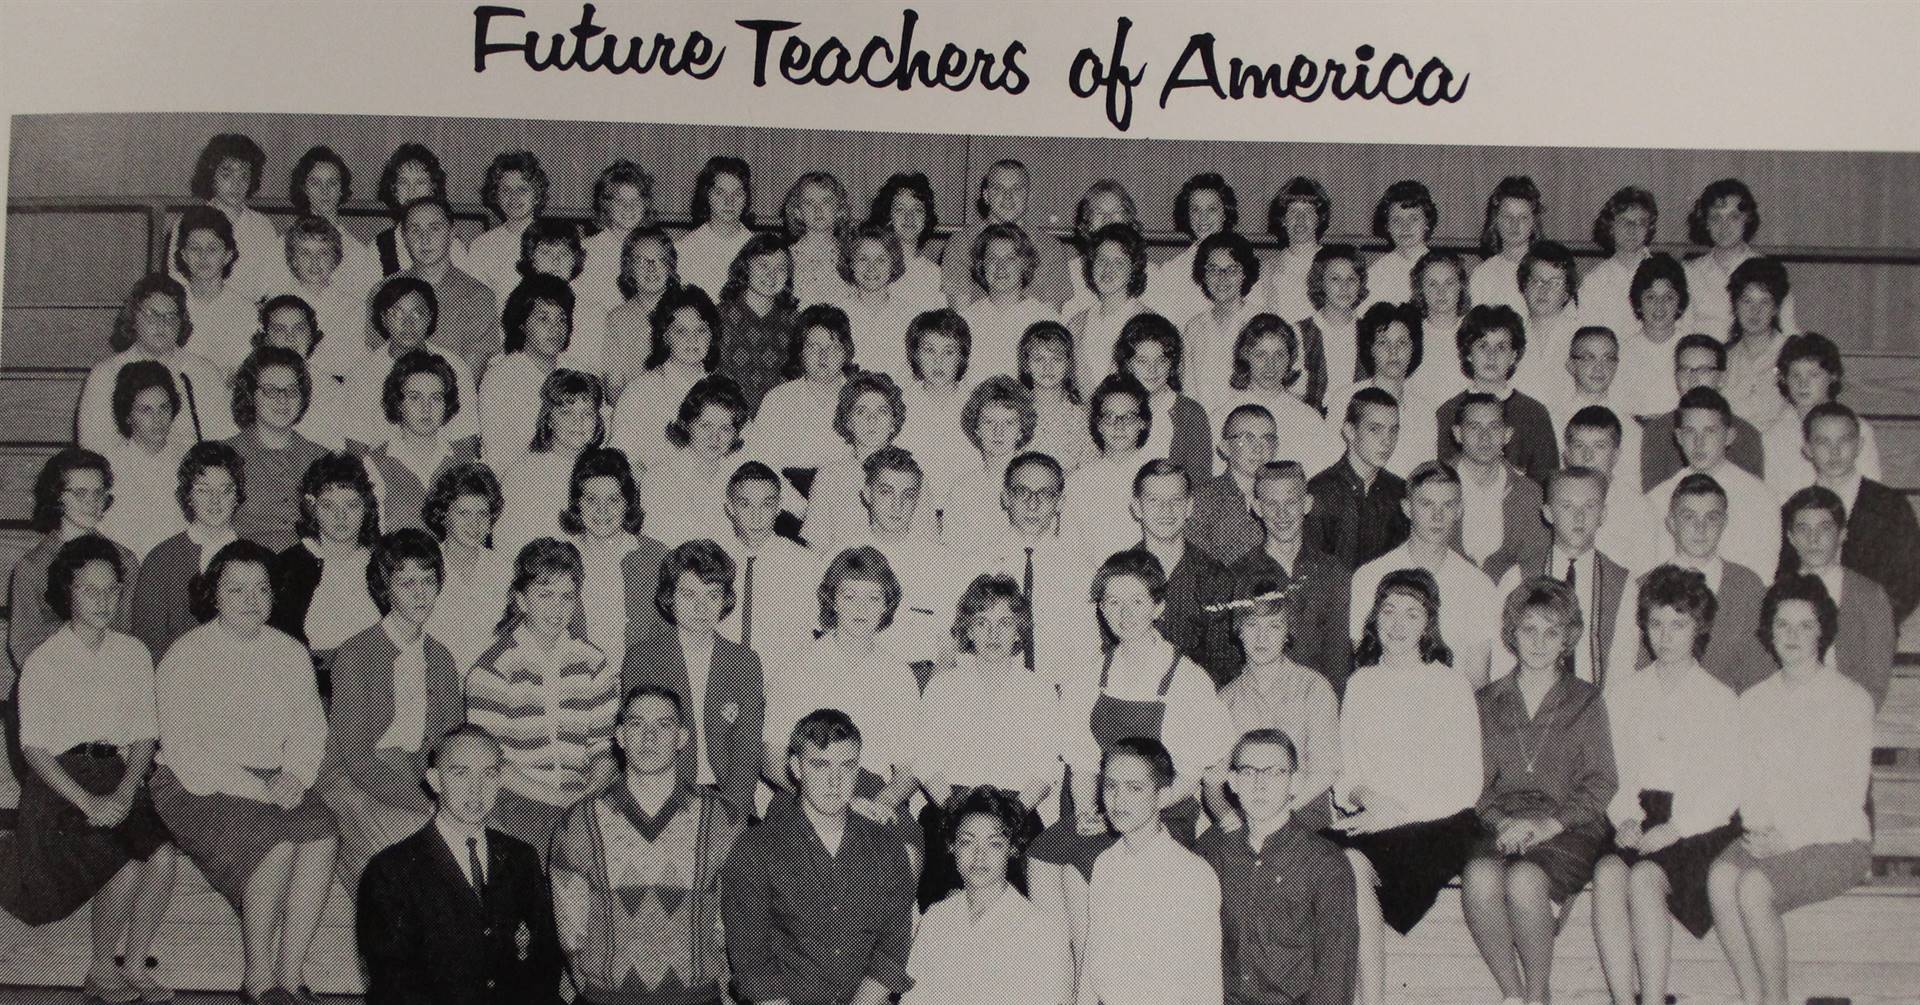 1964 Future Teachers of America